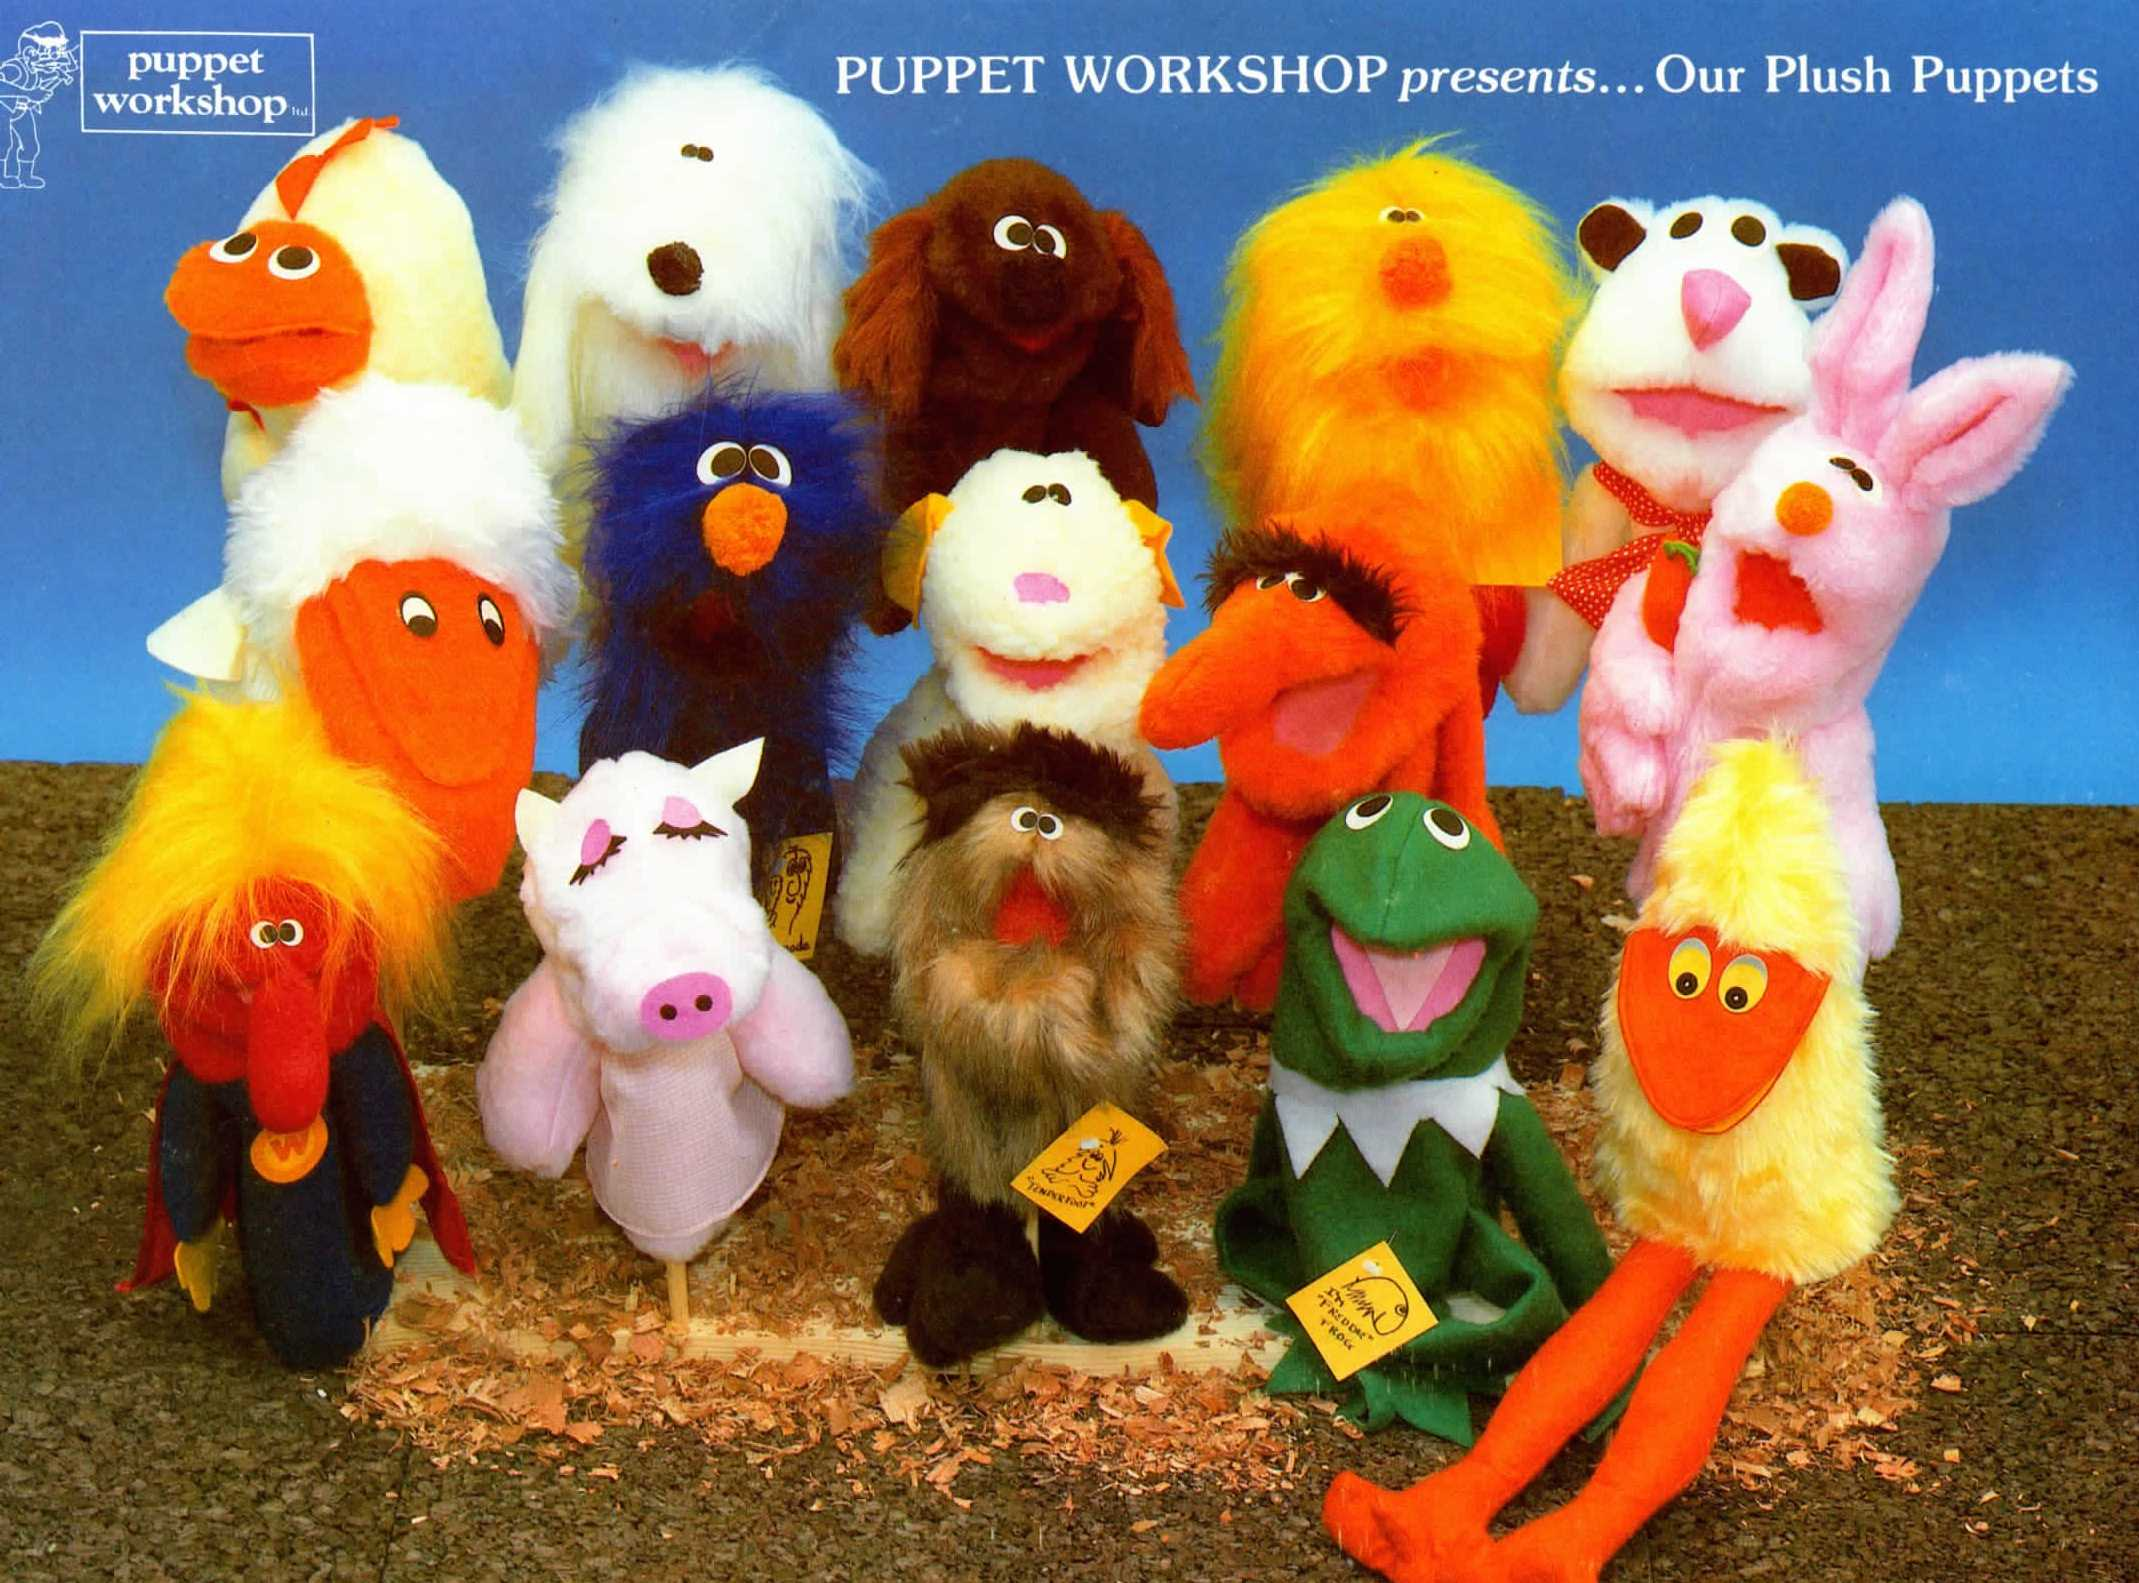 Our original hand puppets